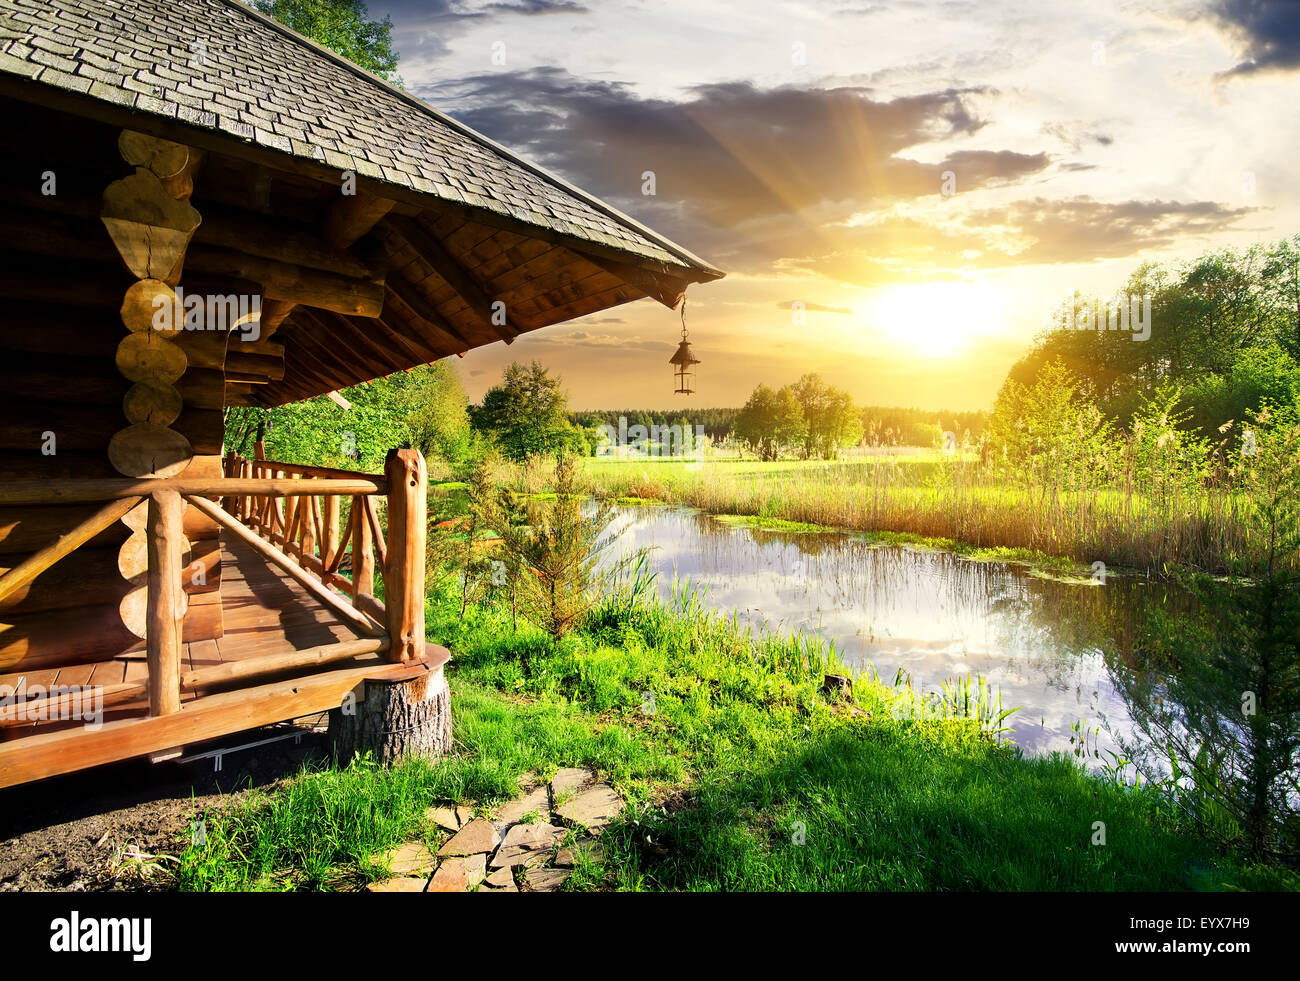 Wooden bathhouse near lake at the sunset - Stock Image